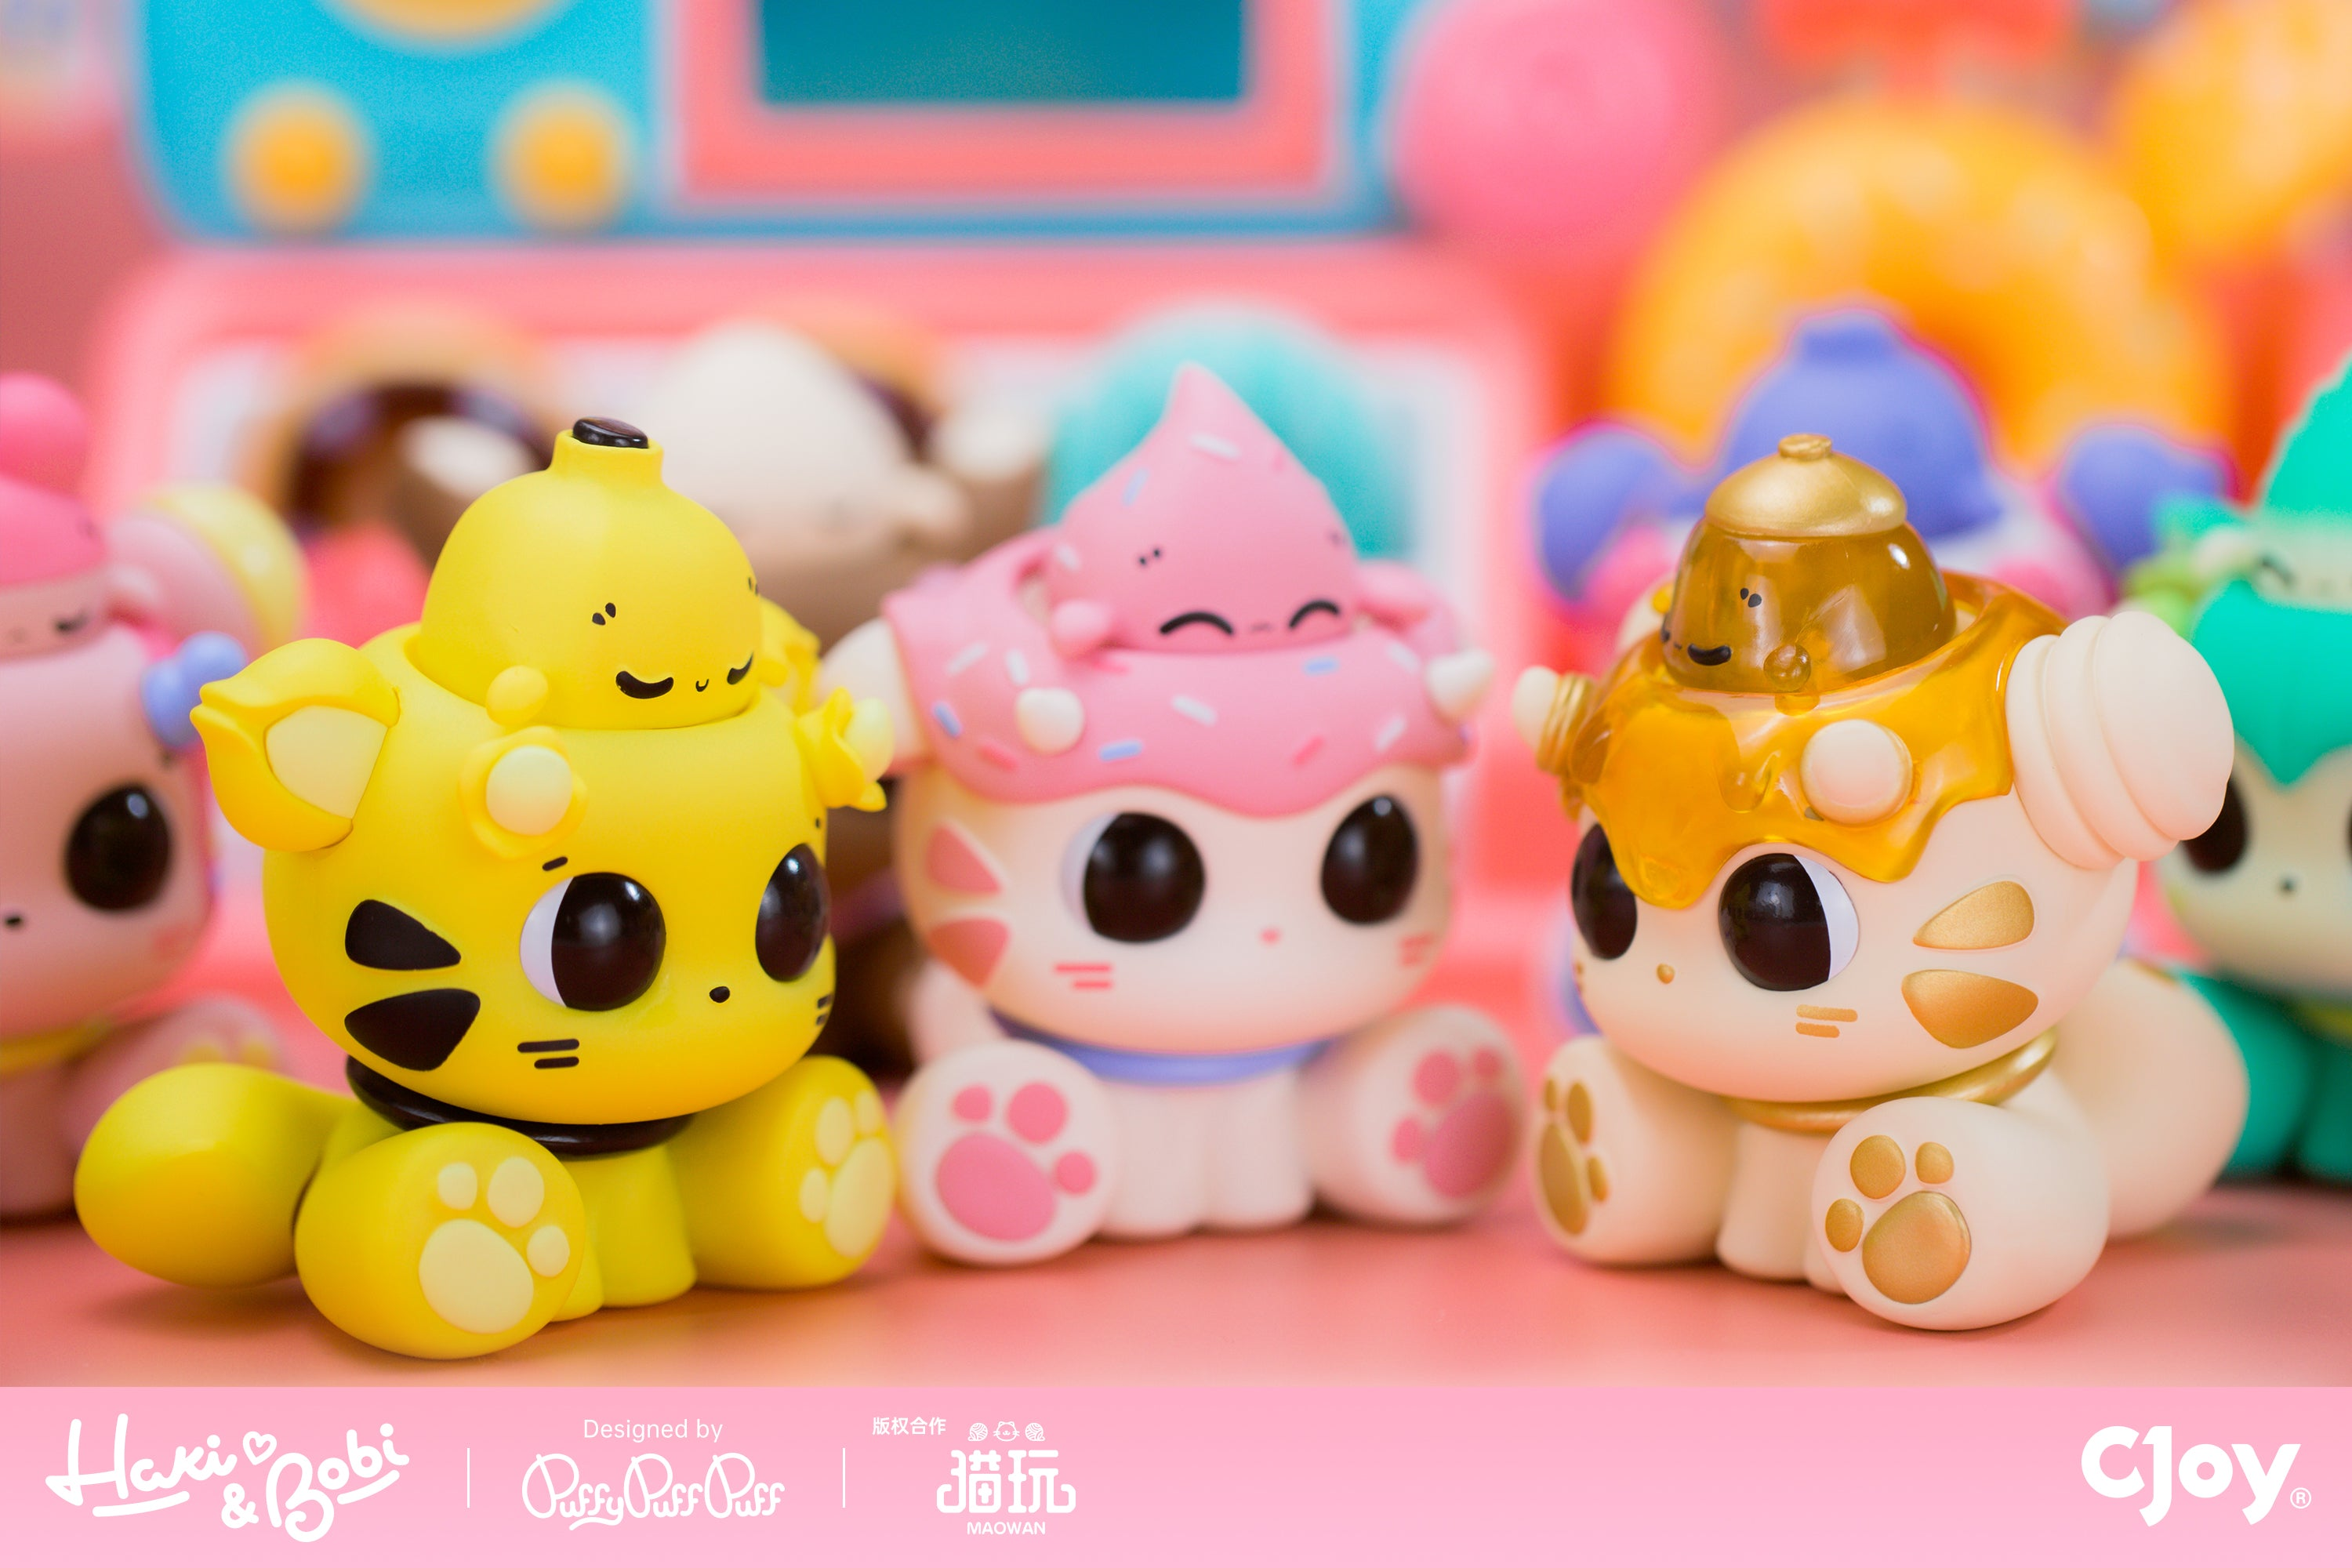 Haki + Bobi Blindbox Series by PuffyPuffPuff x CJOY